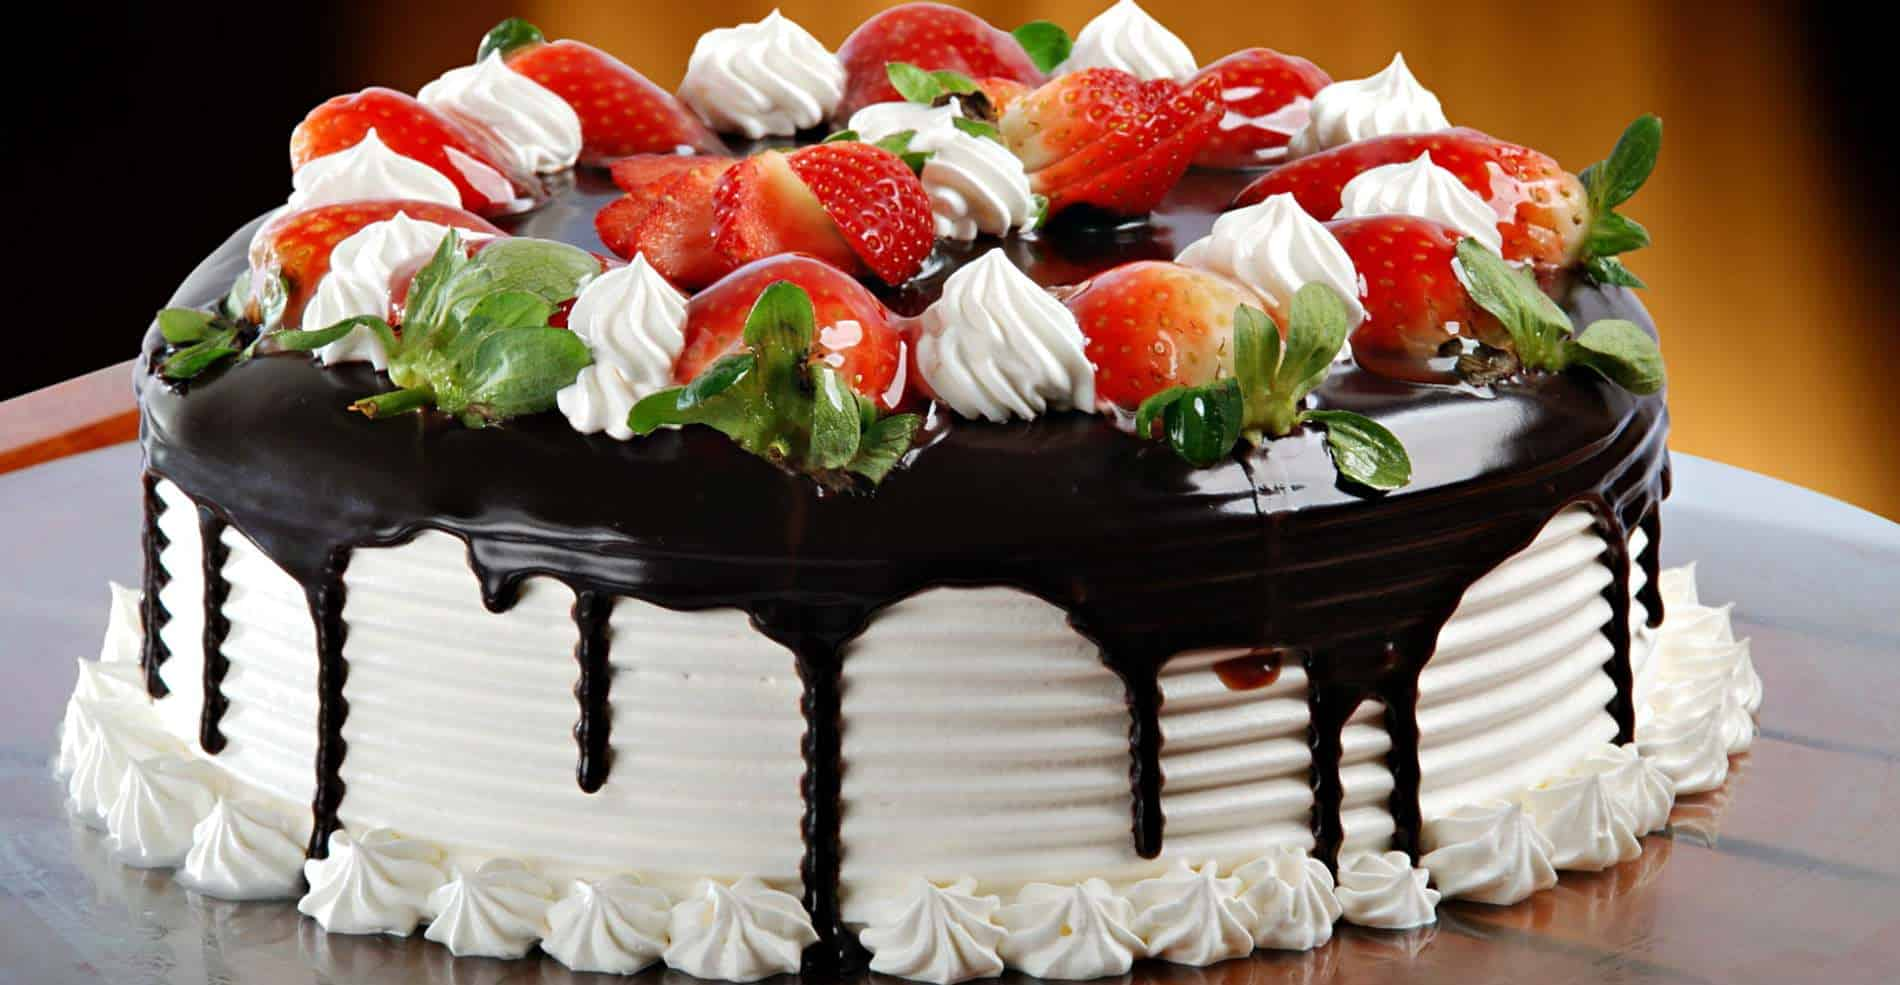 A delicious white cake with chocolate dripping down the sides, topped with red strawberries and cream